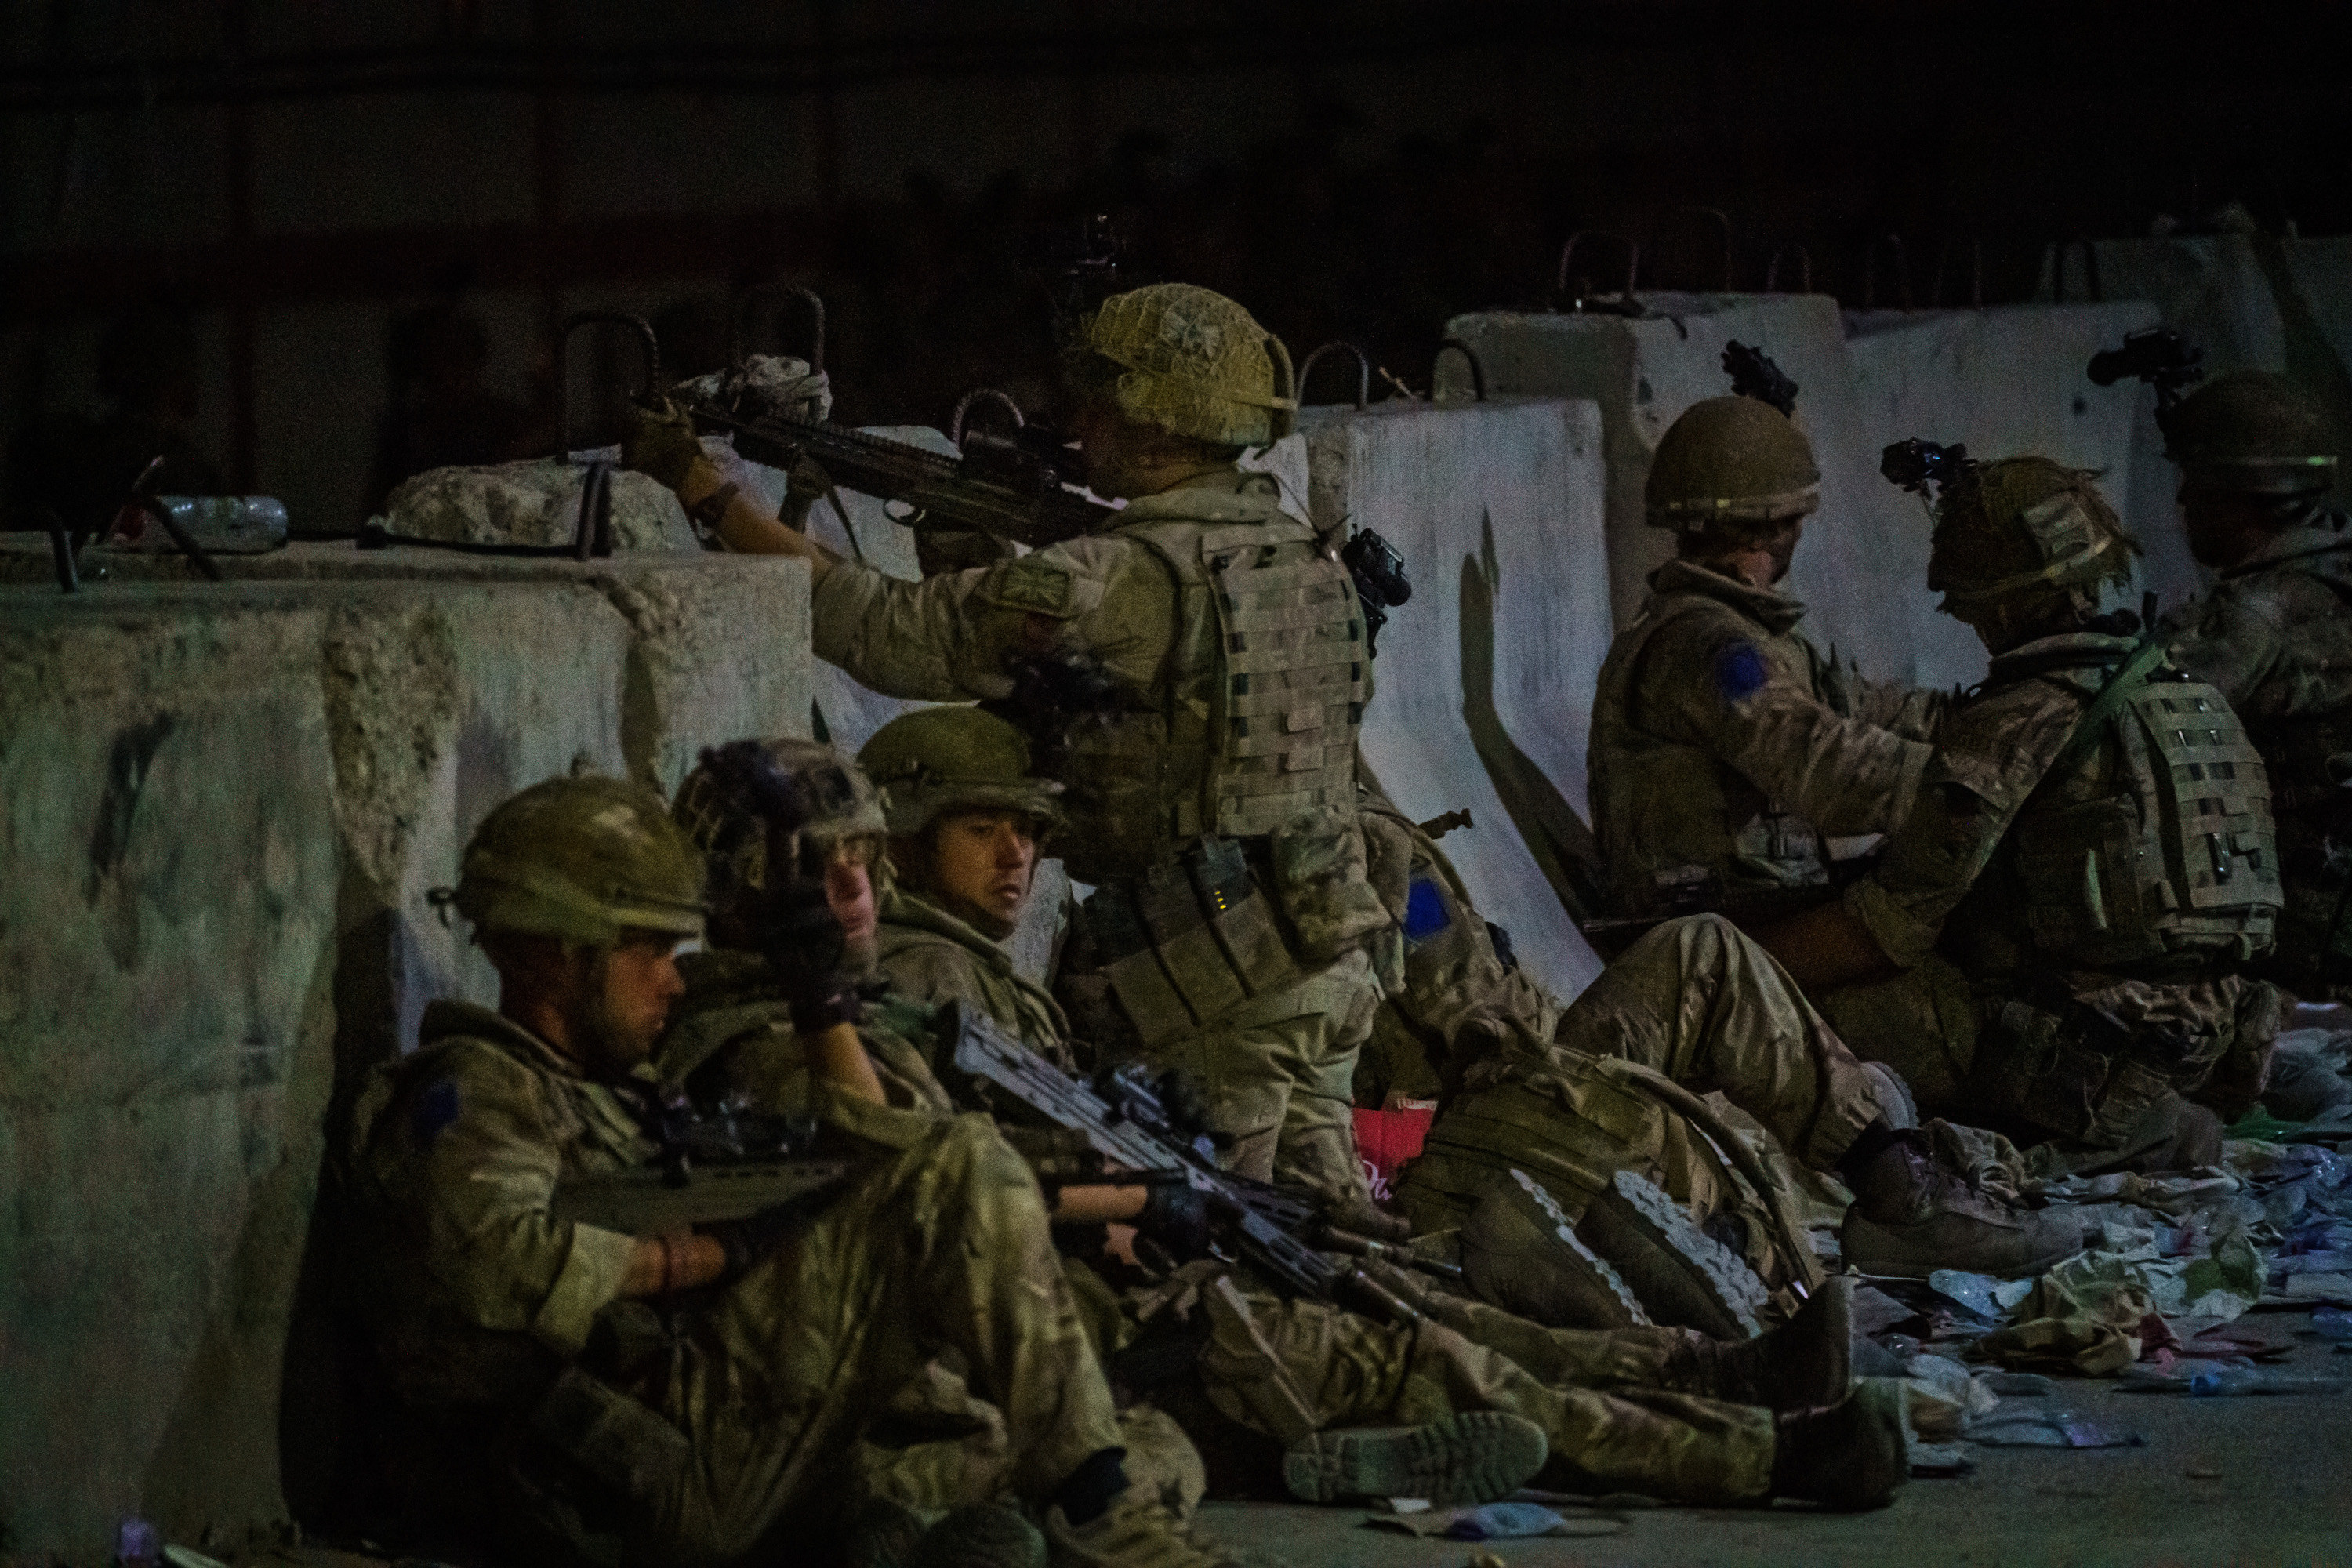 Military soldiers sit behind a wall, one looking over the barrier through their gun scope